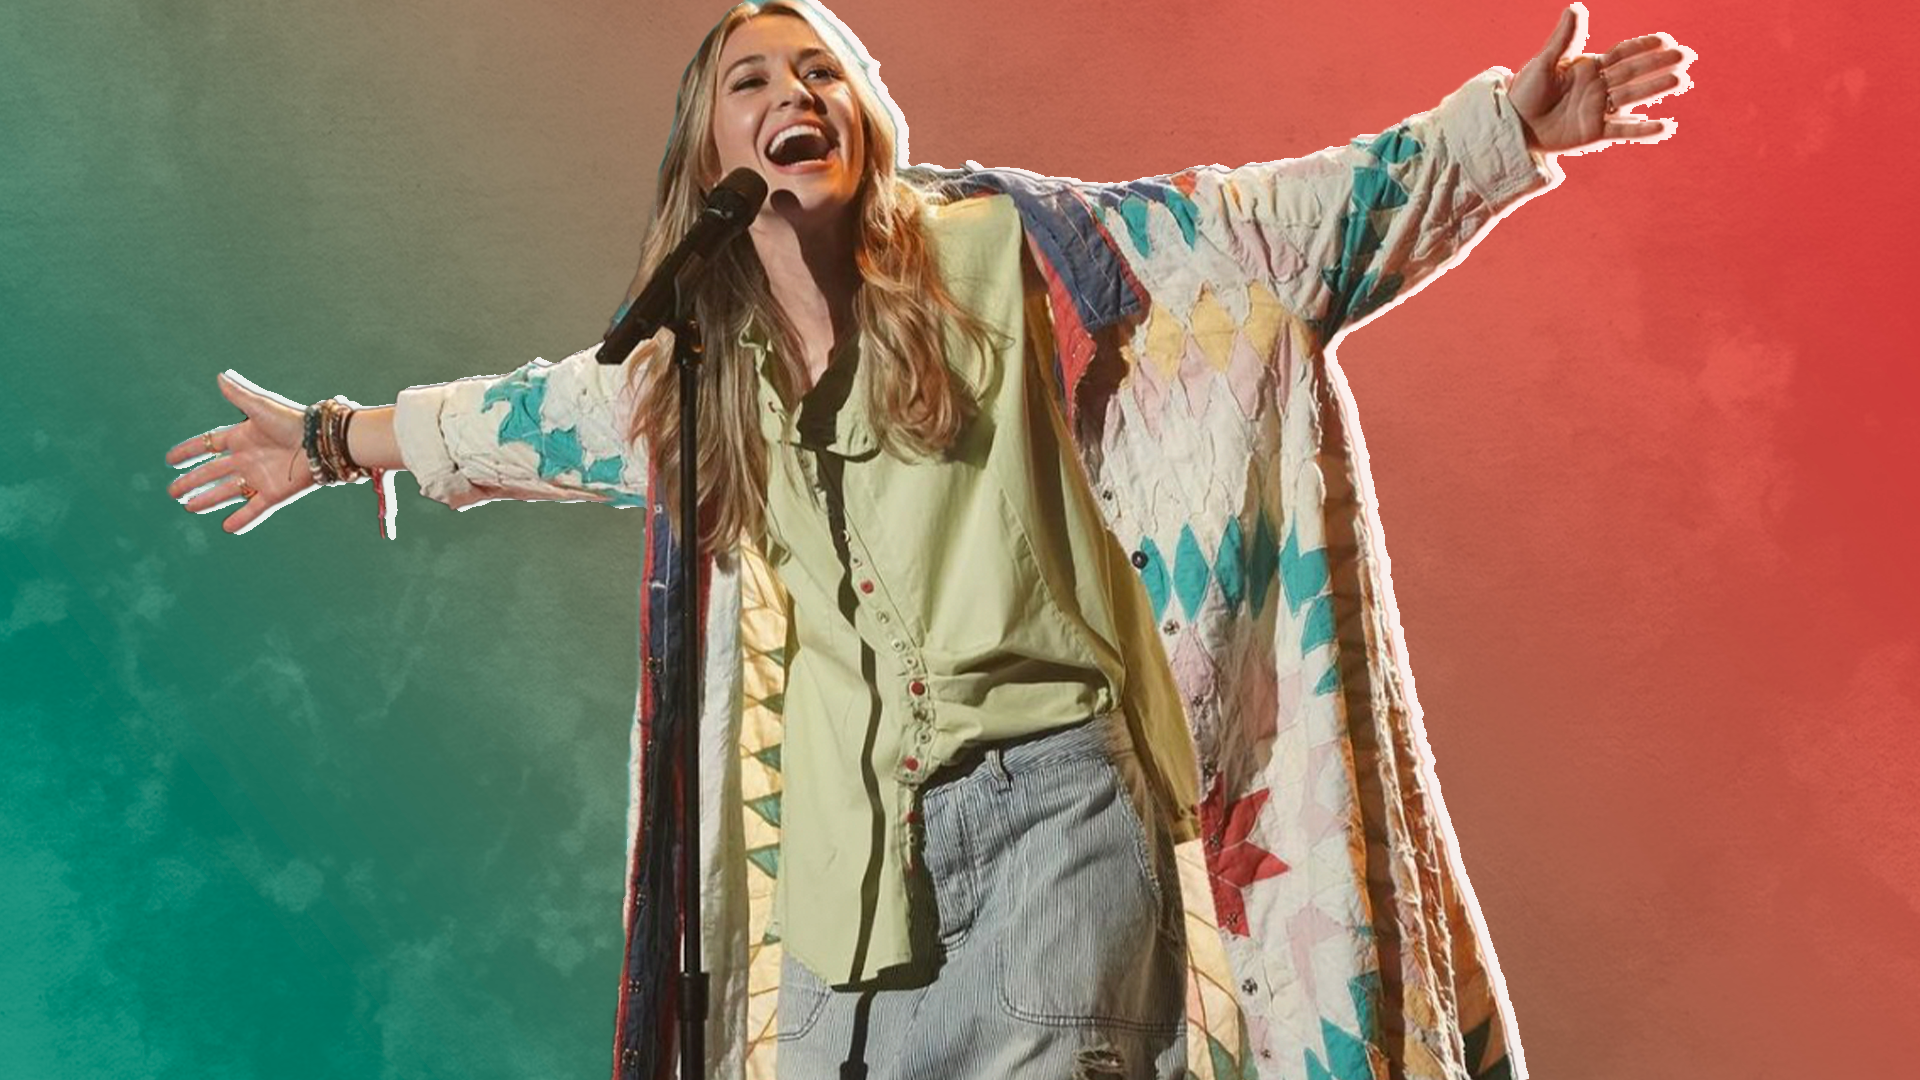 Lauren Daigle performs You Say on American Idol stage